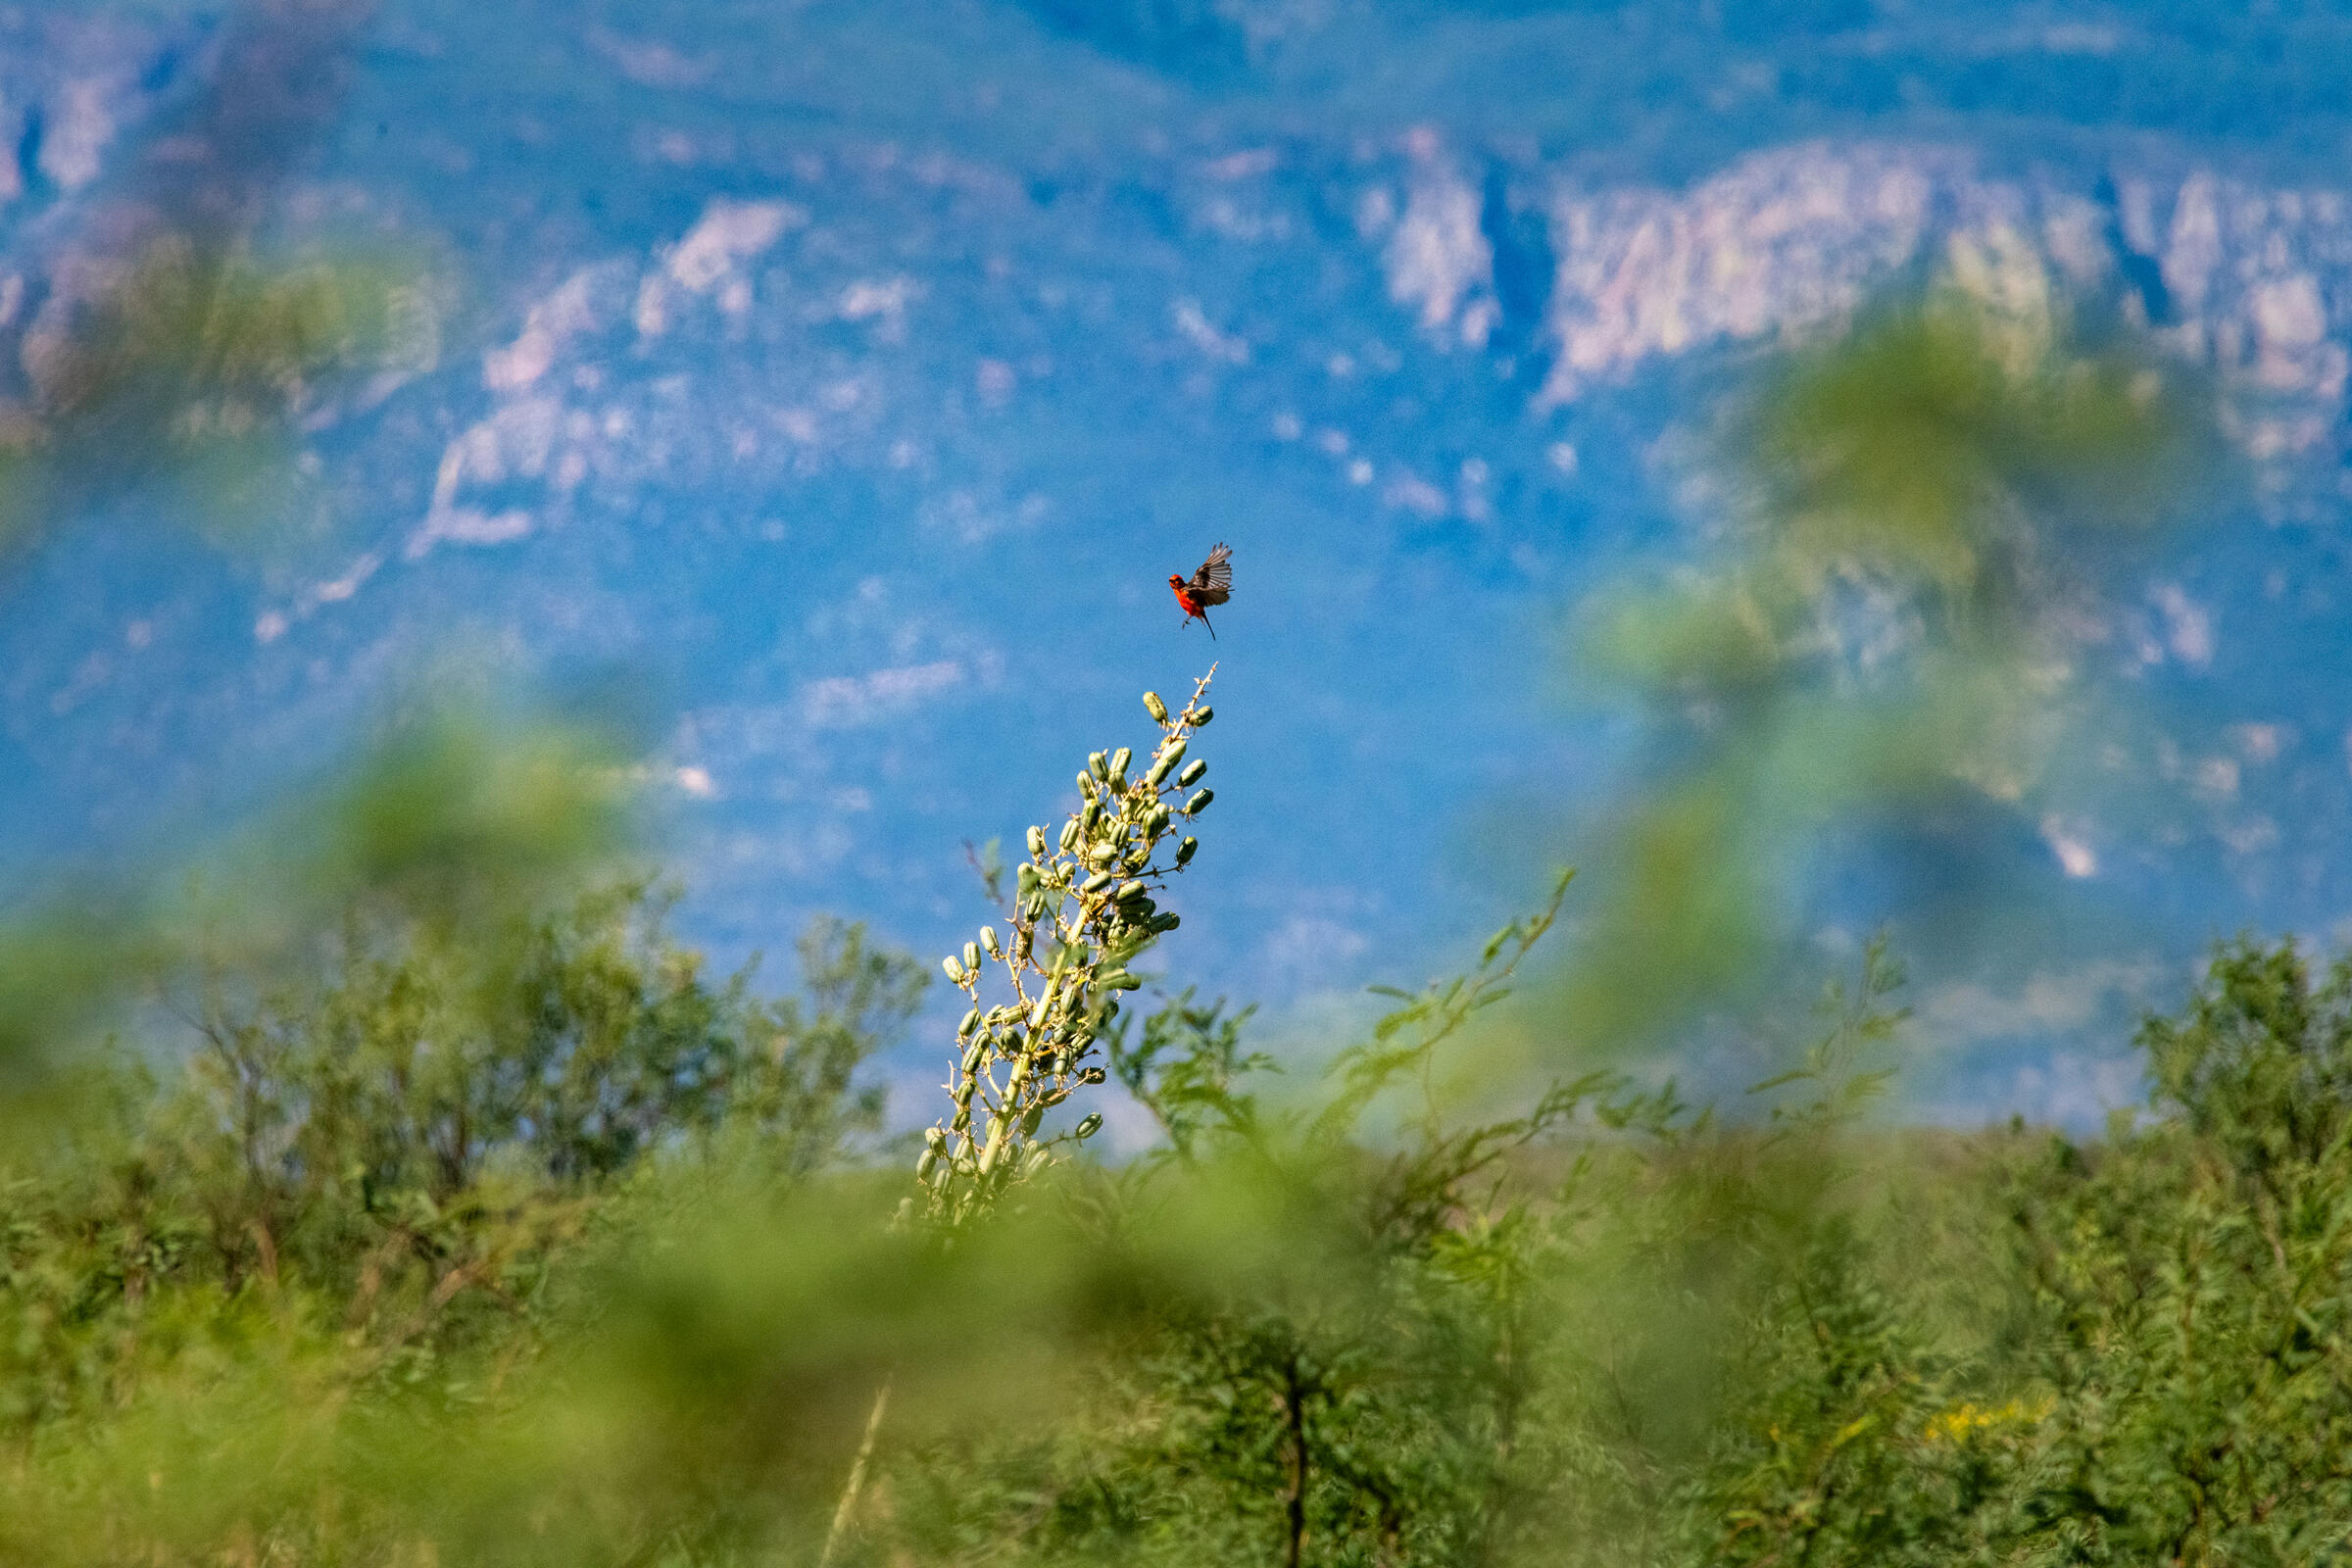 A Vermilion Flycatcher—one of some 350 bird species recorded at the San Pedro Riparian National Conservation Area—lands atop an agave stem. Ash Ponders